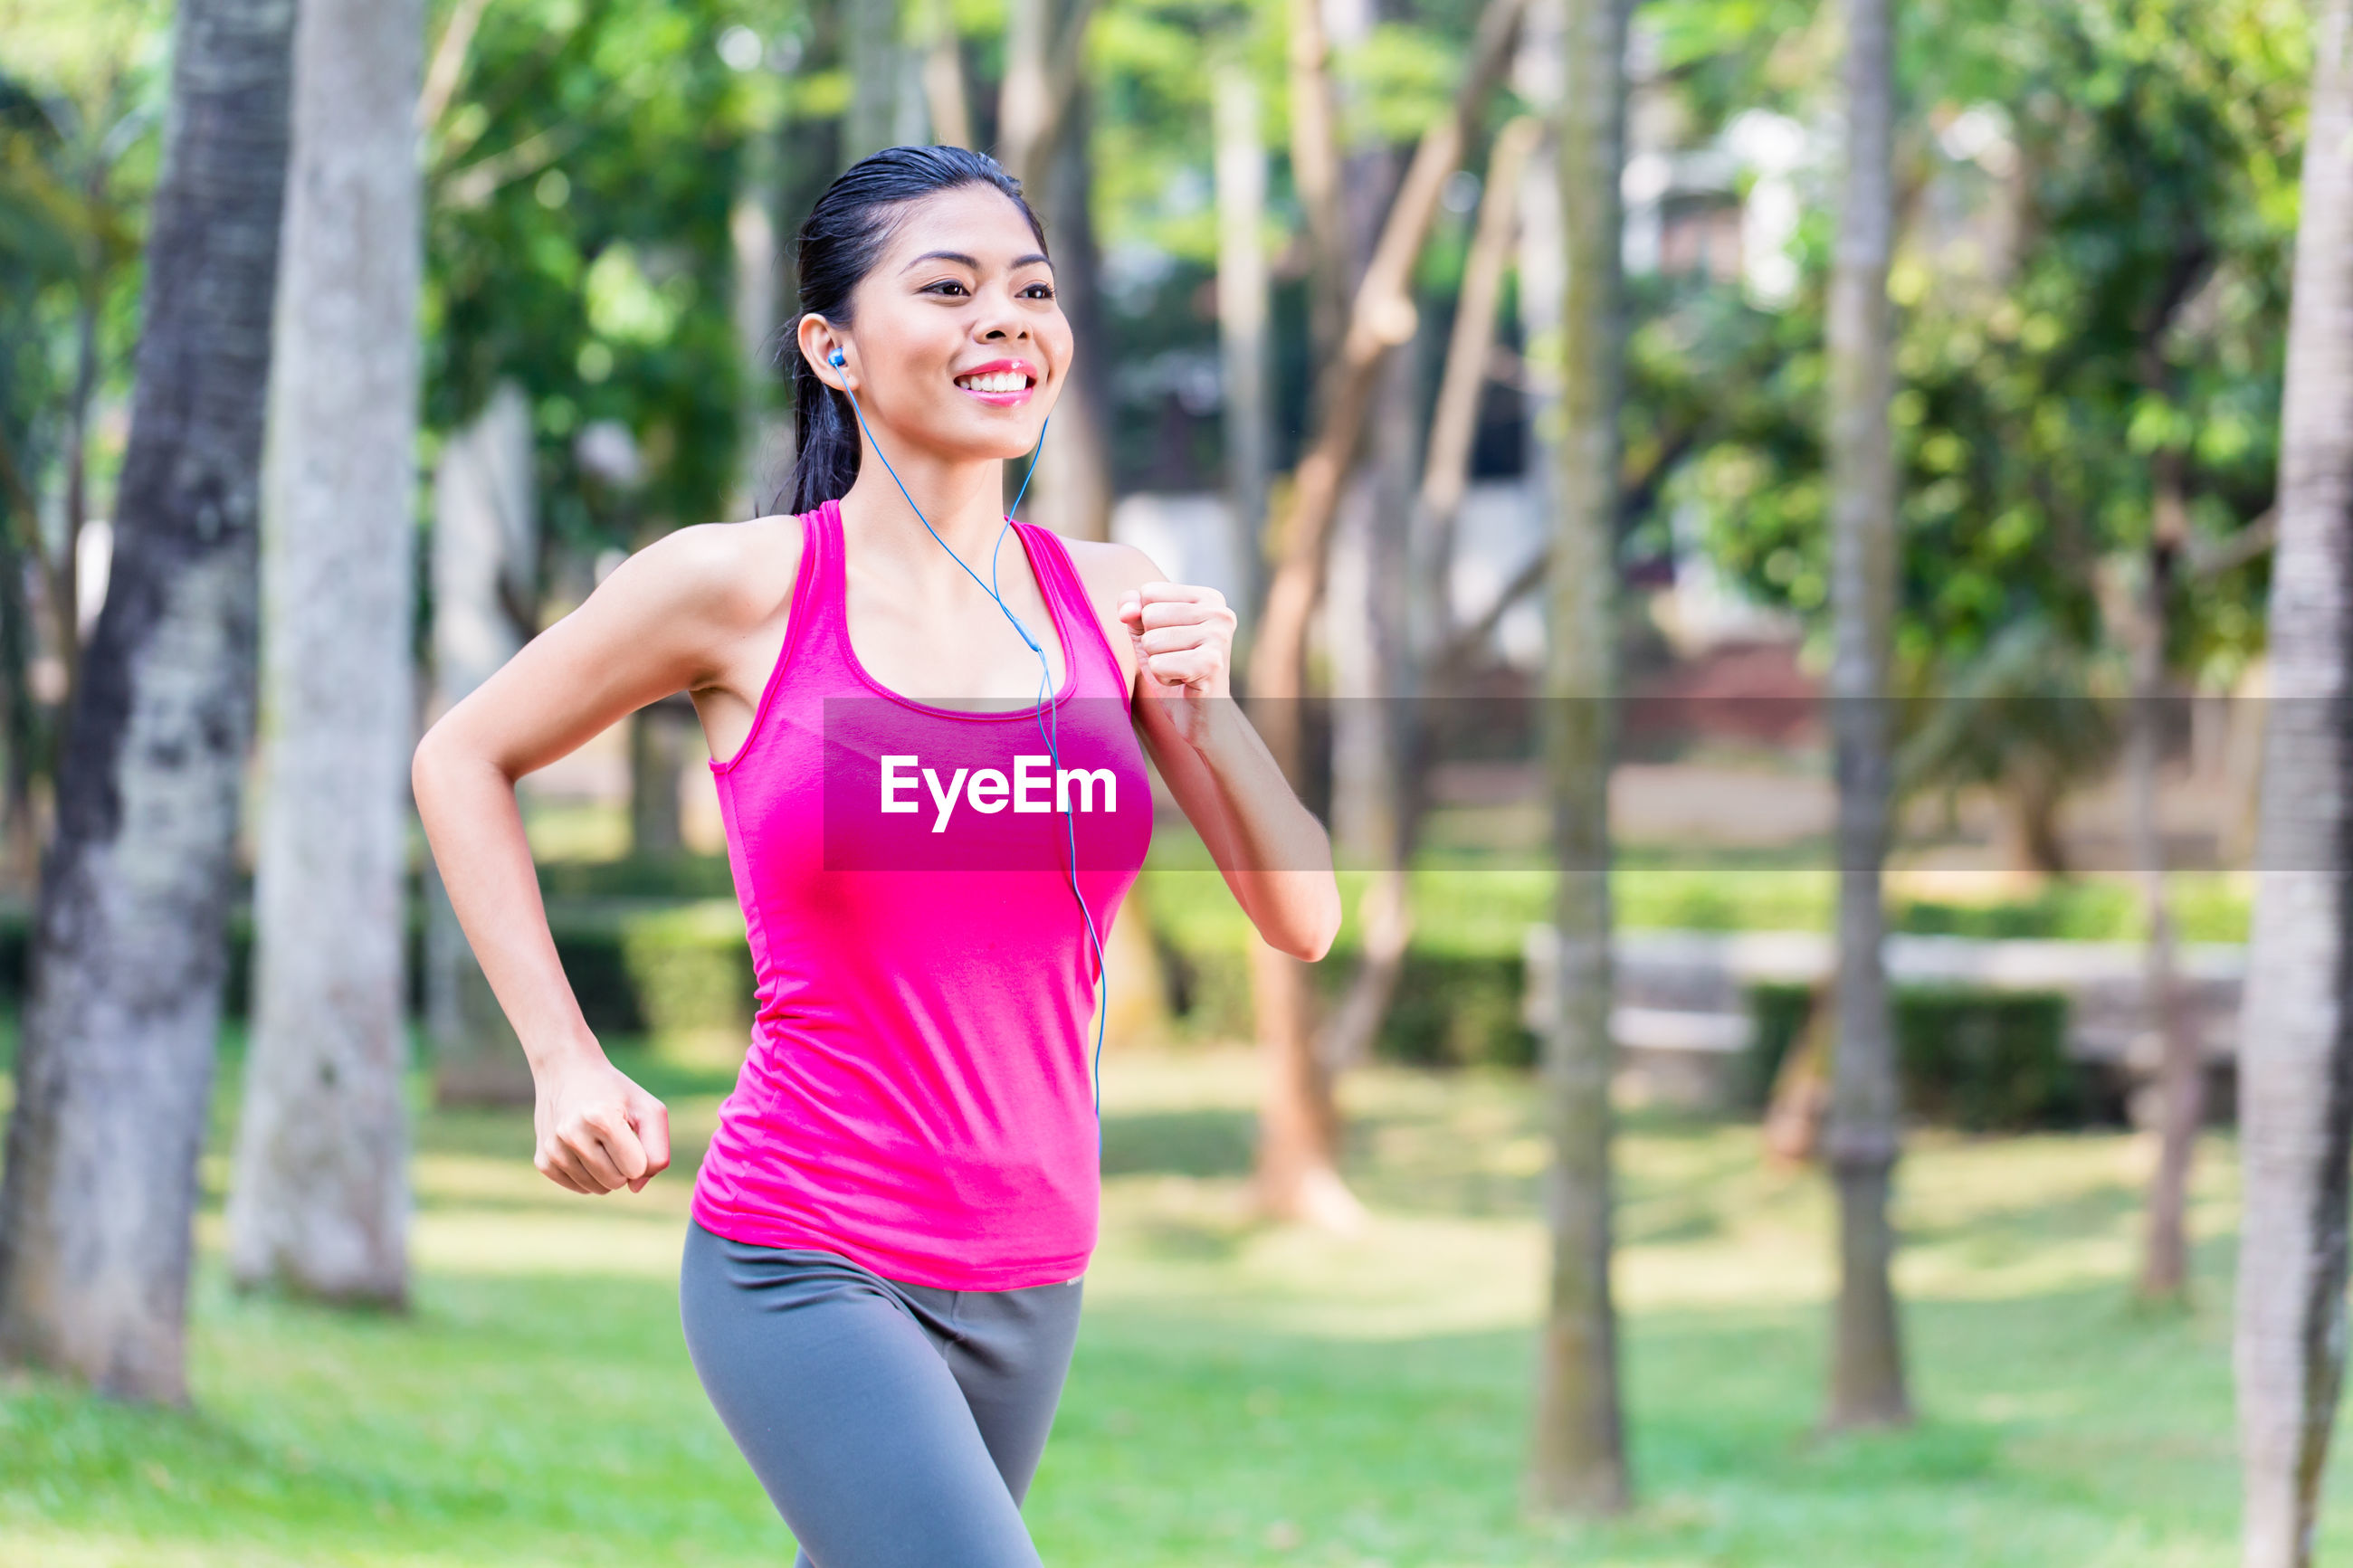 Smiling female athlete exercising in park